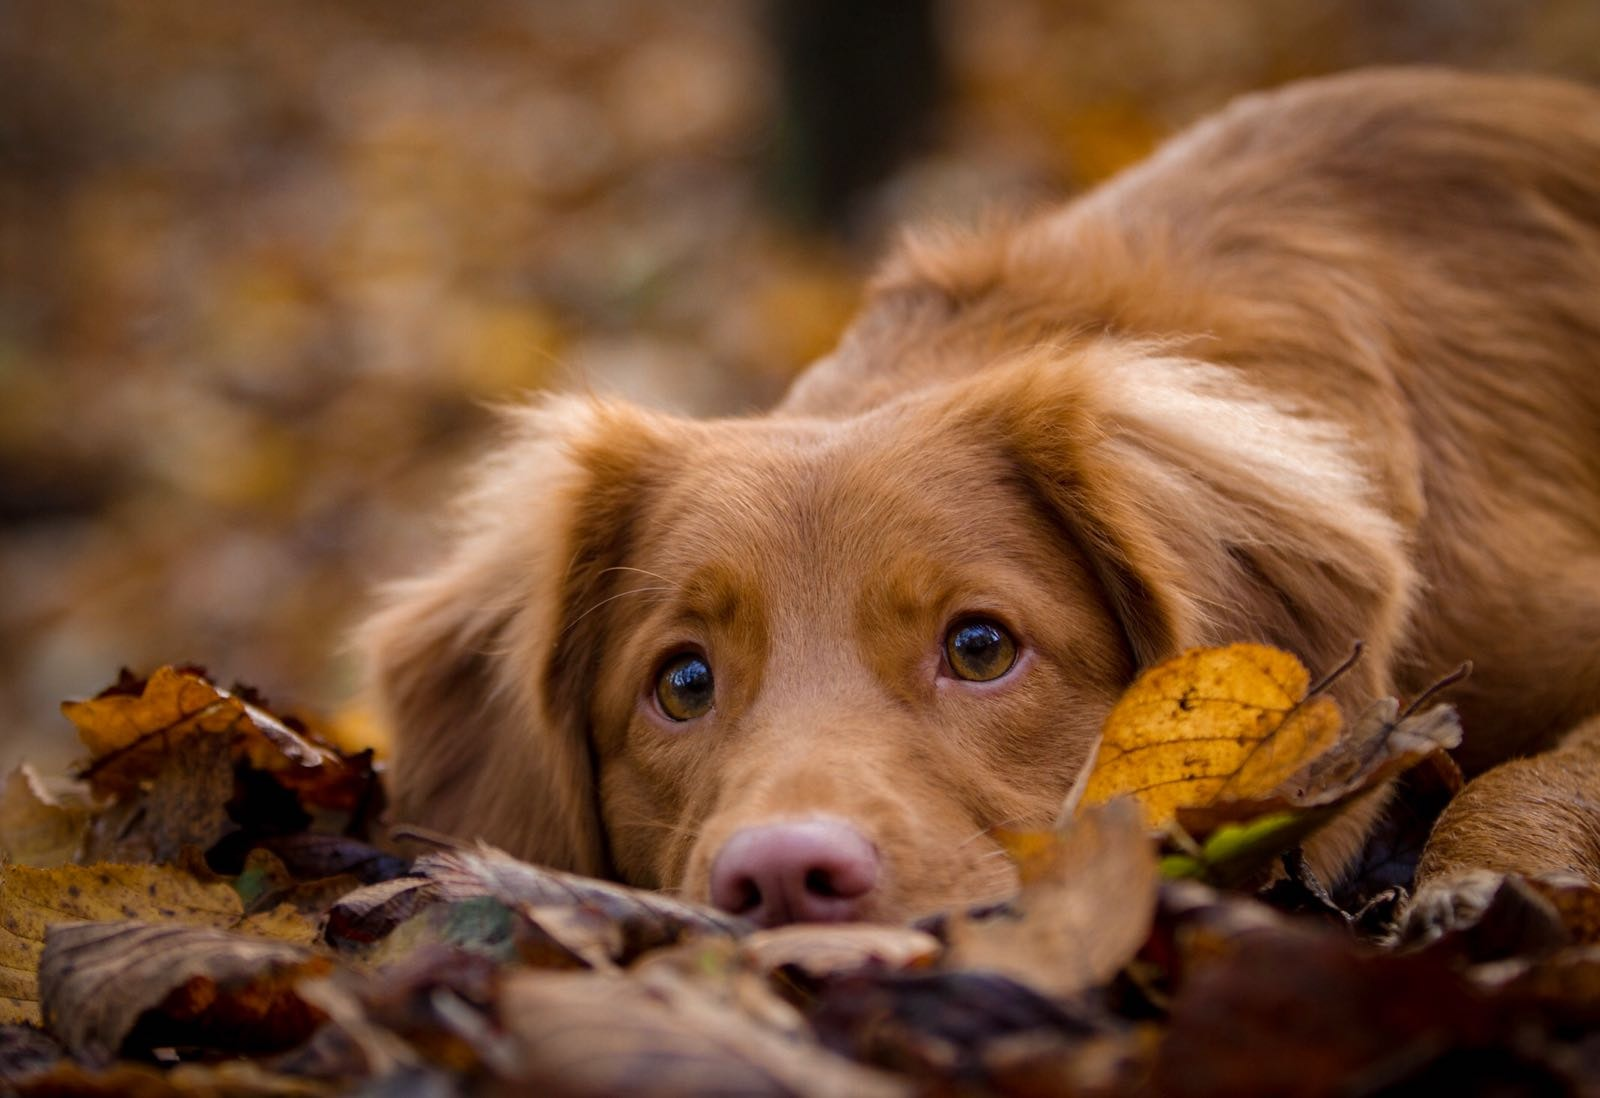 Go to Laula The Toller's profile